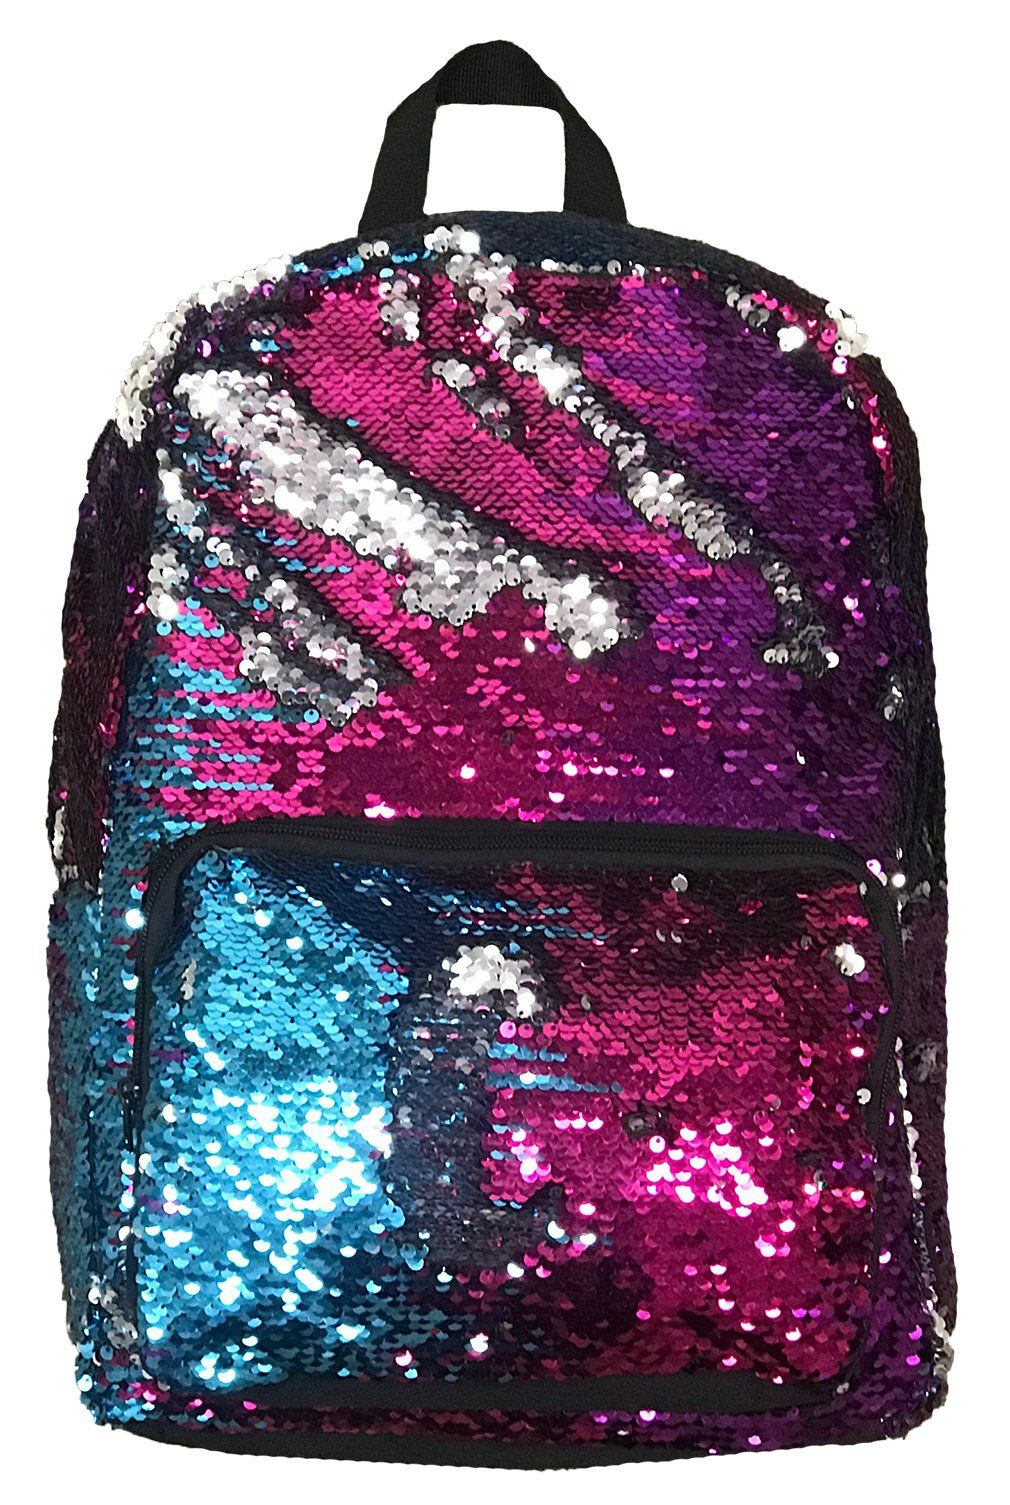 b0c5cf2454 Color Changing Sequin Backpack - Multi-Color Mix in 2019